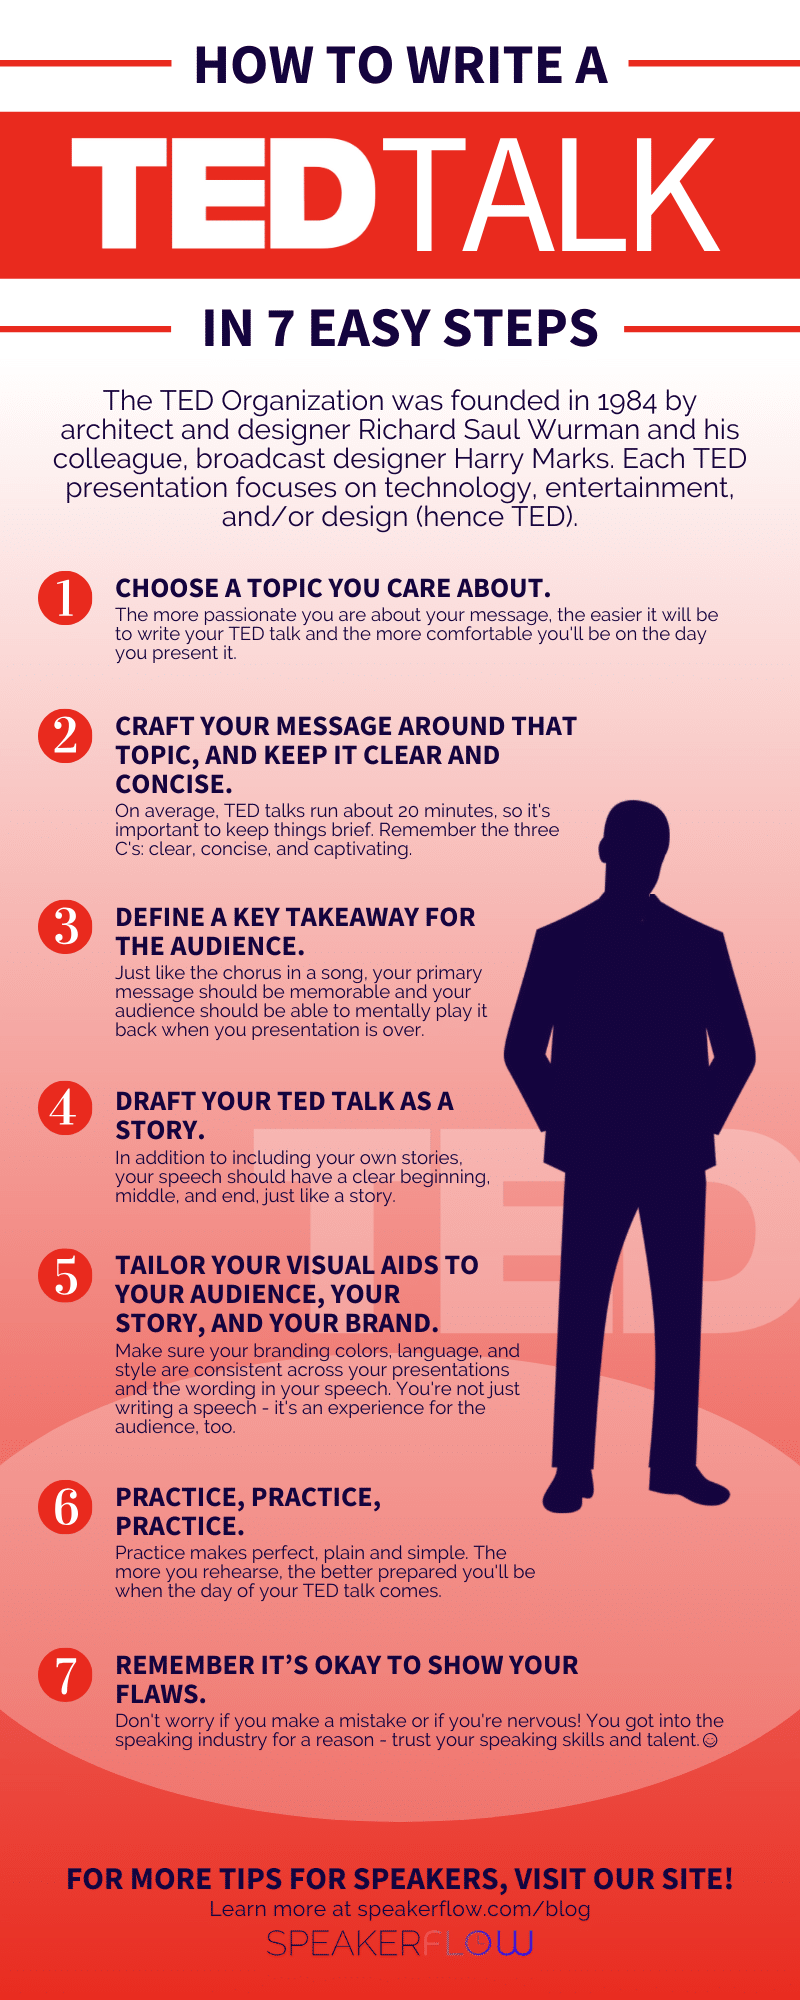 How To Write A TED Talk In 8 Easy Steps  SpeakerFlow Blog